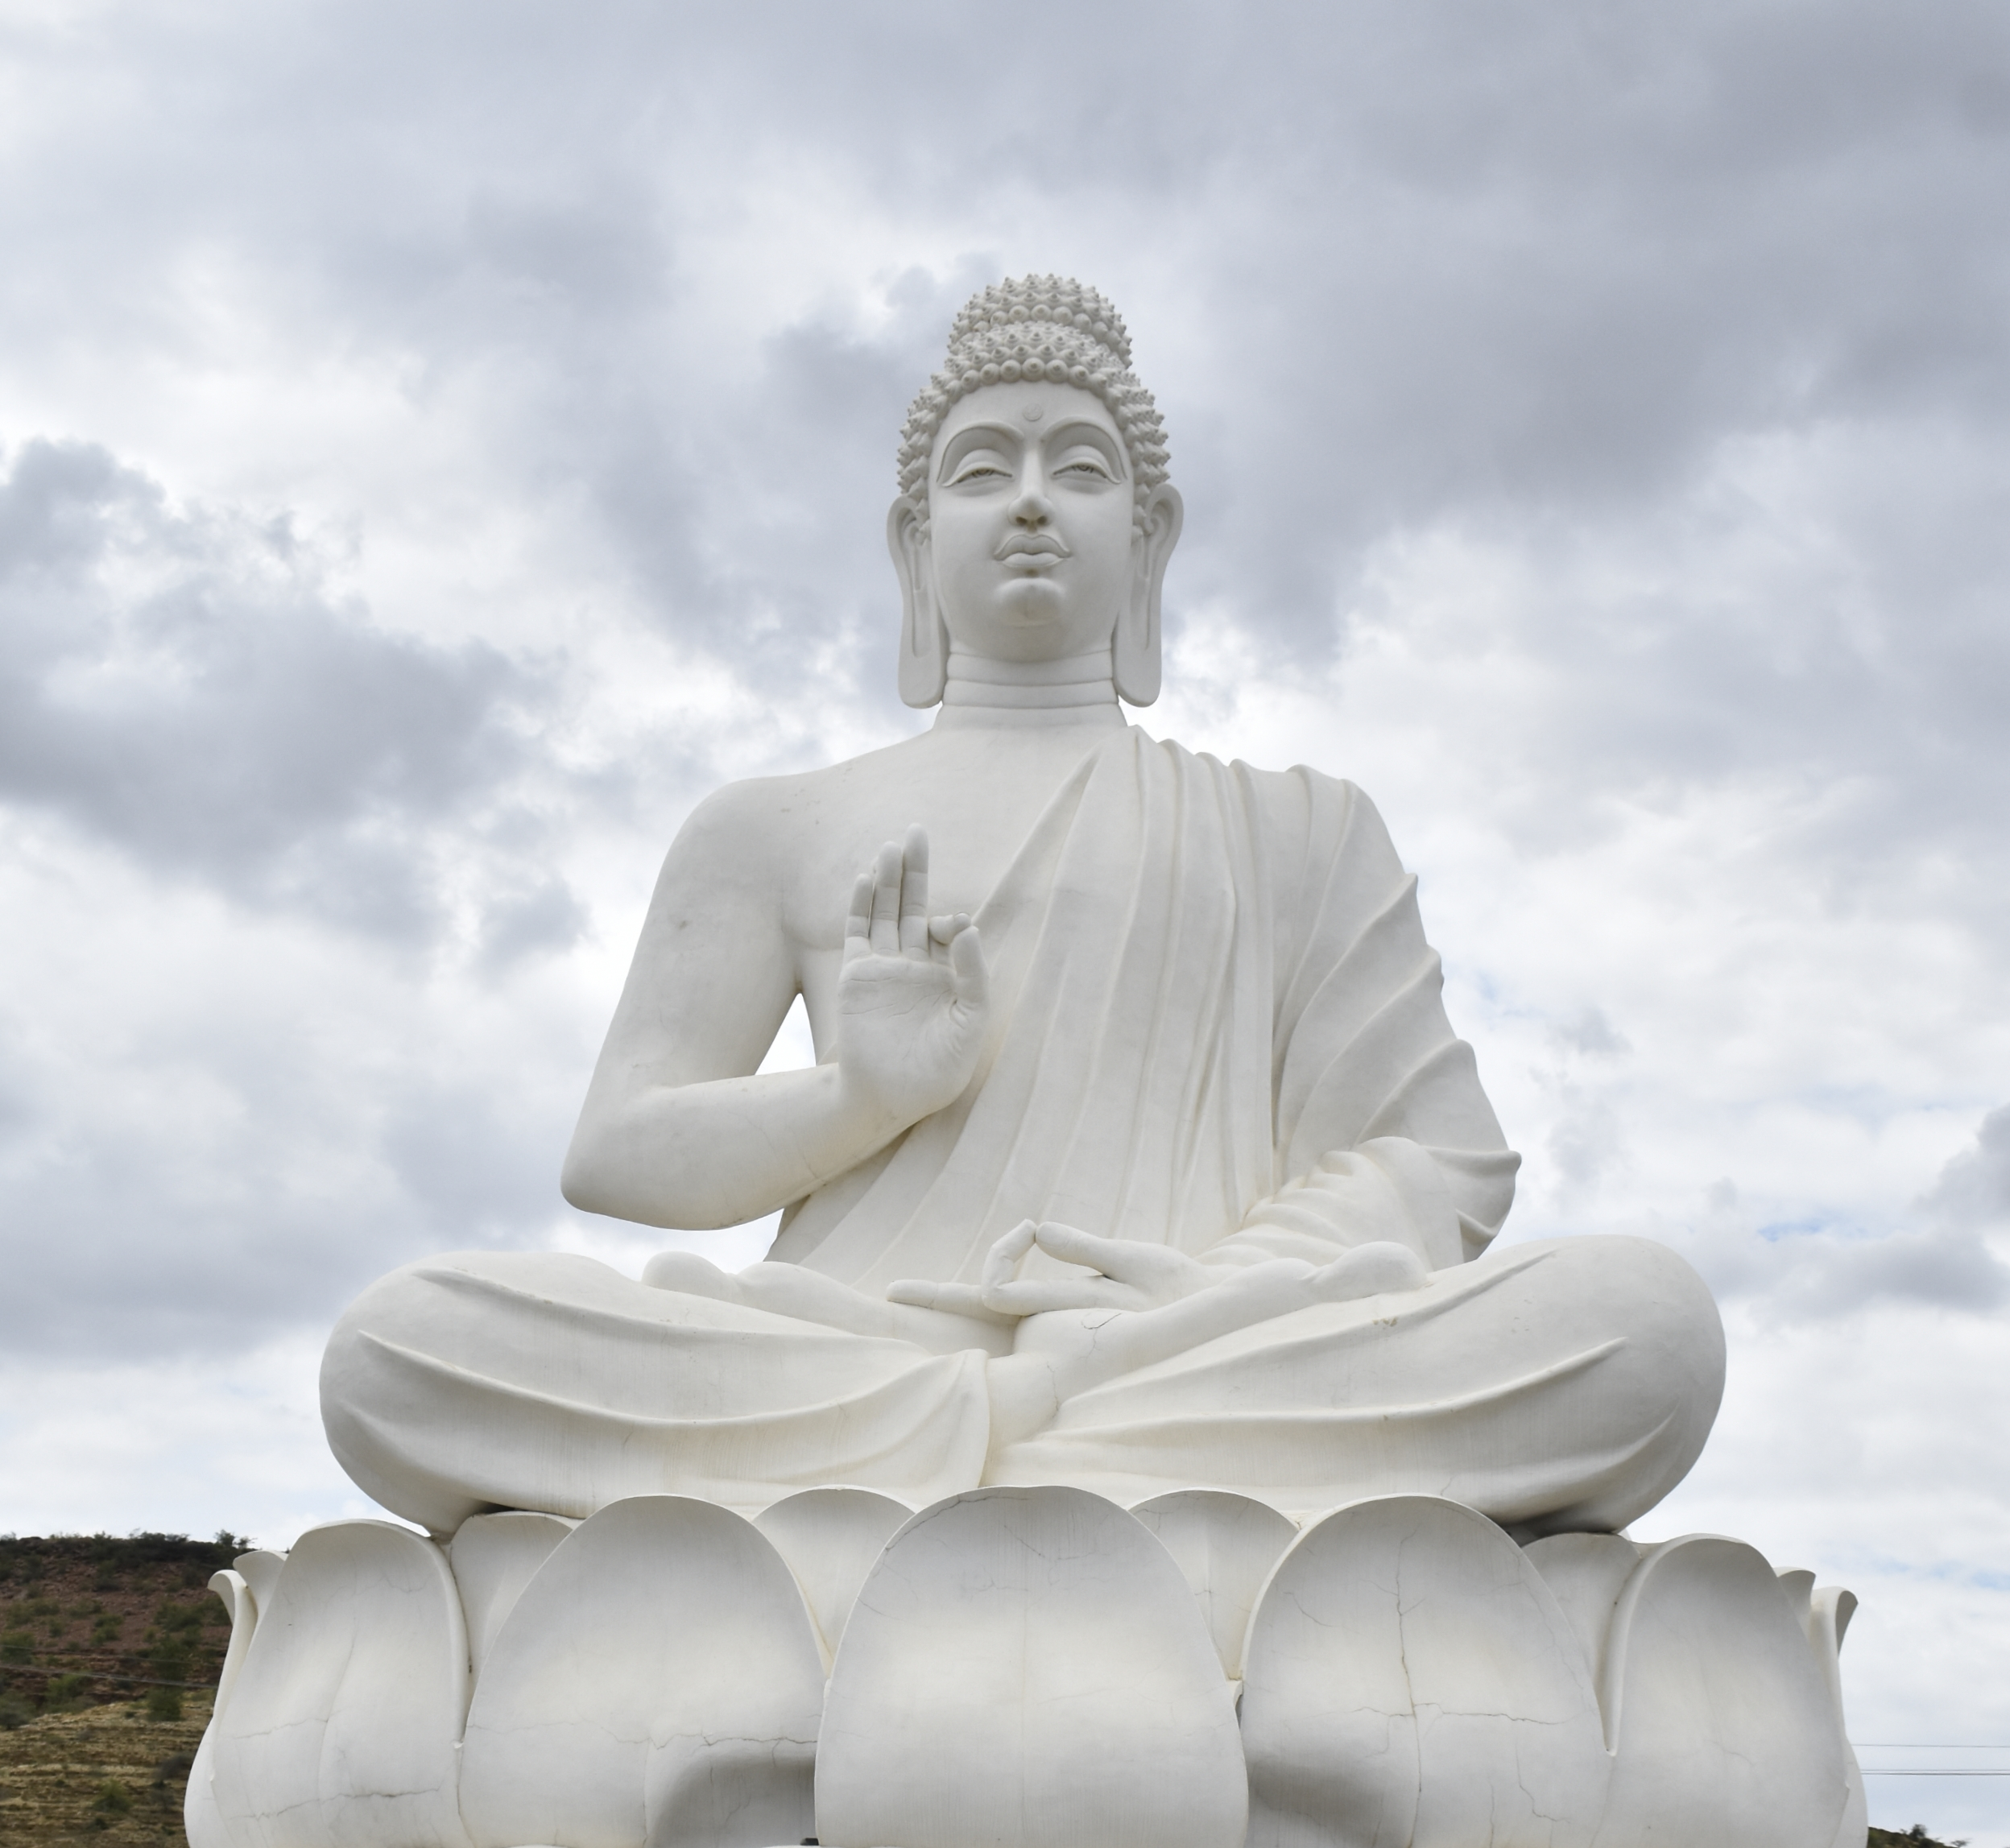 Buddha statue under cloudy sky